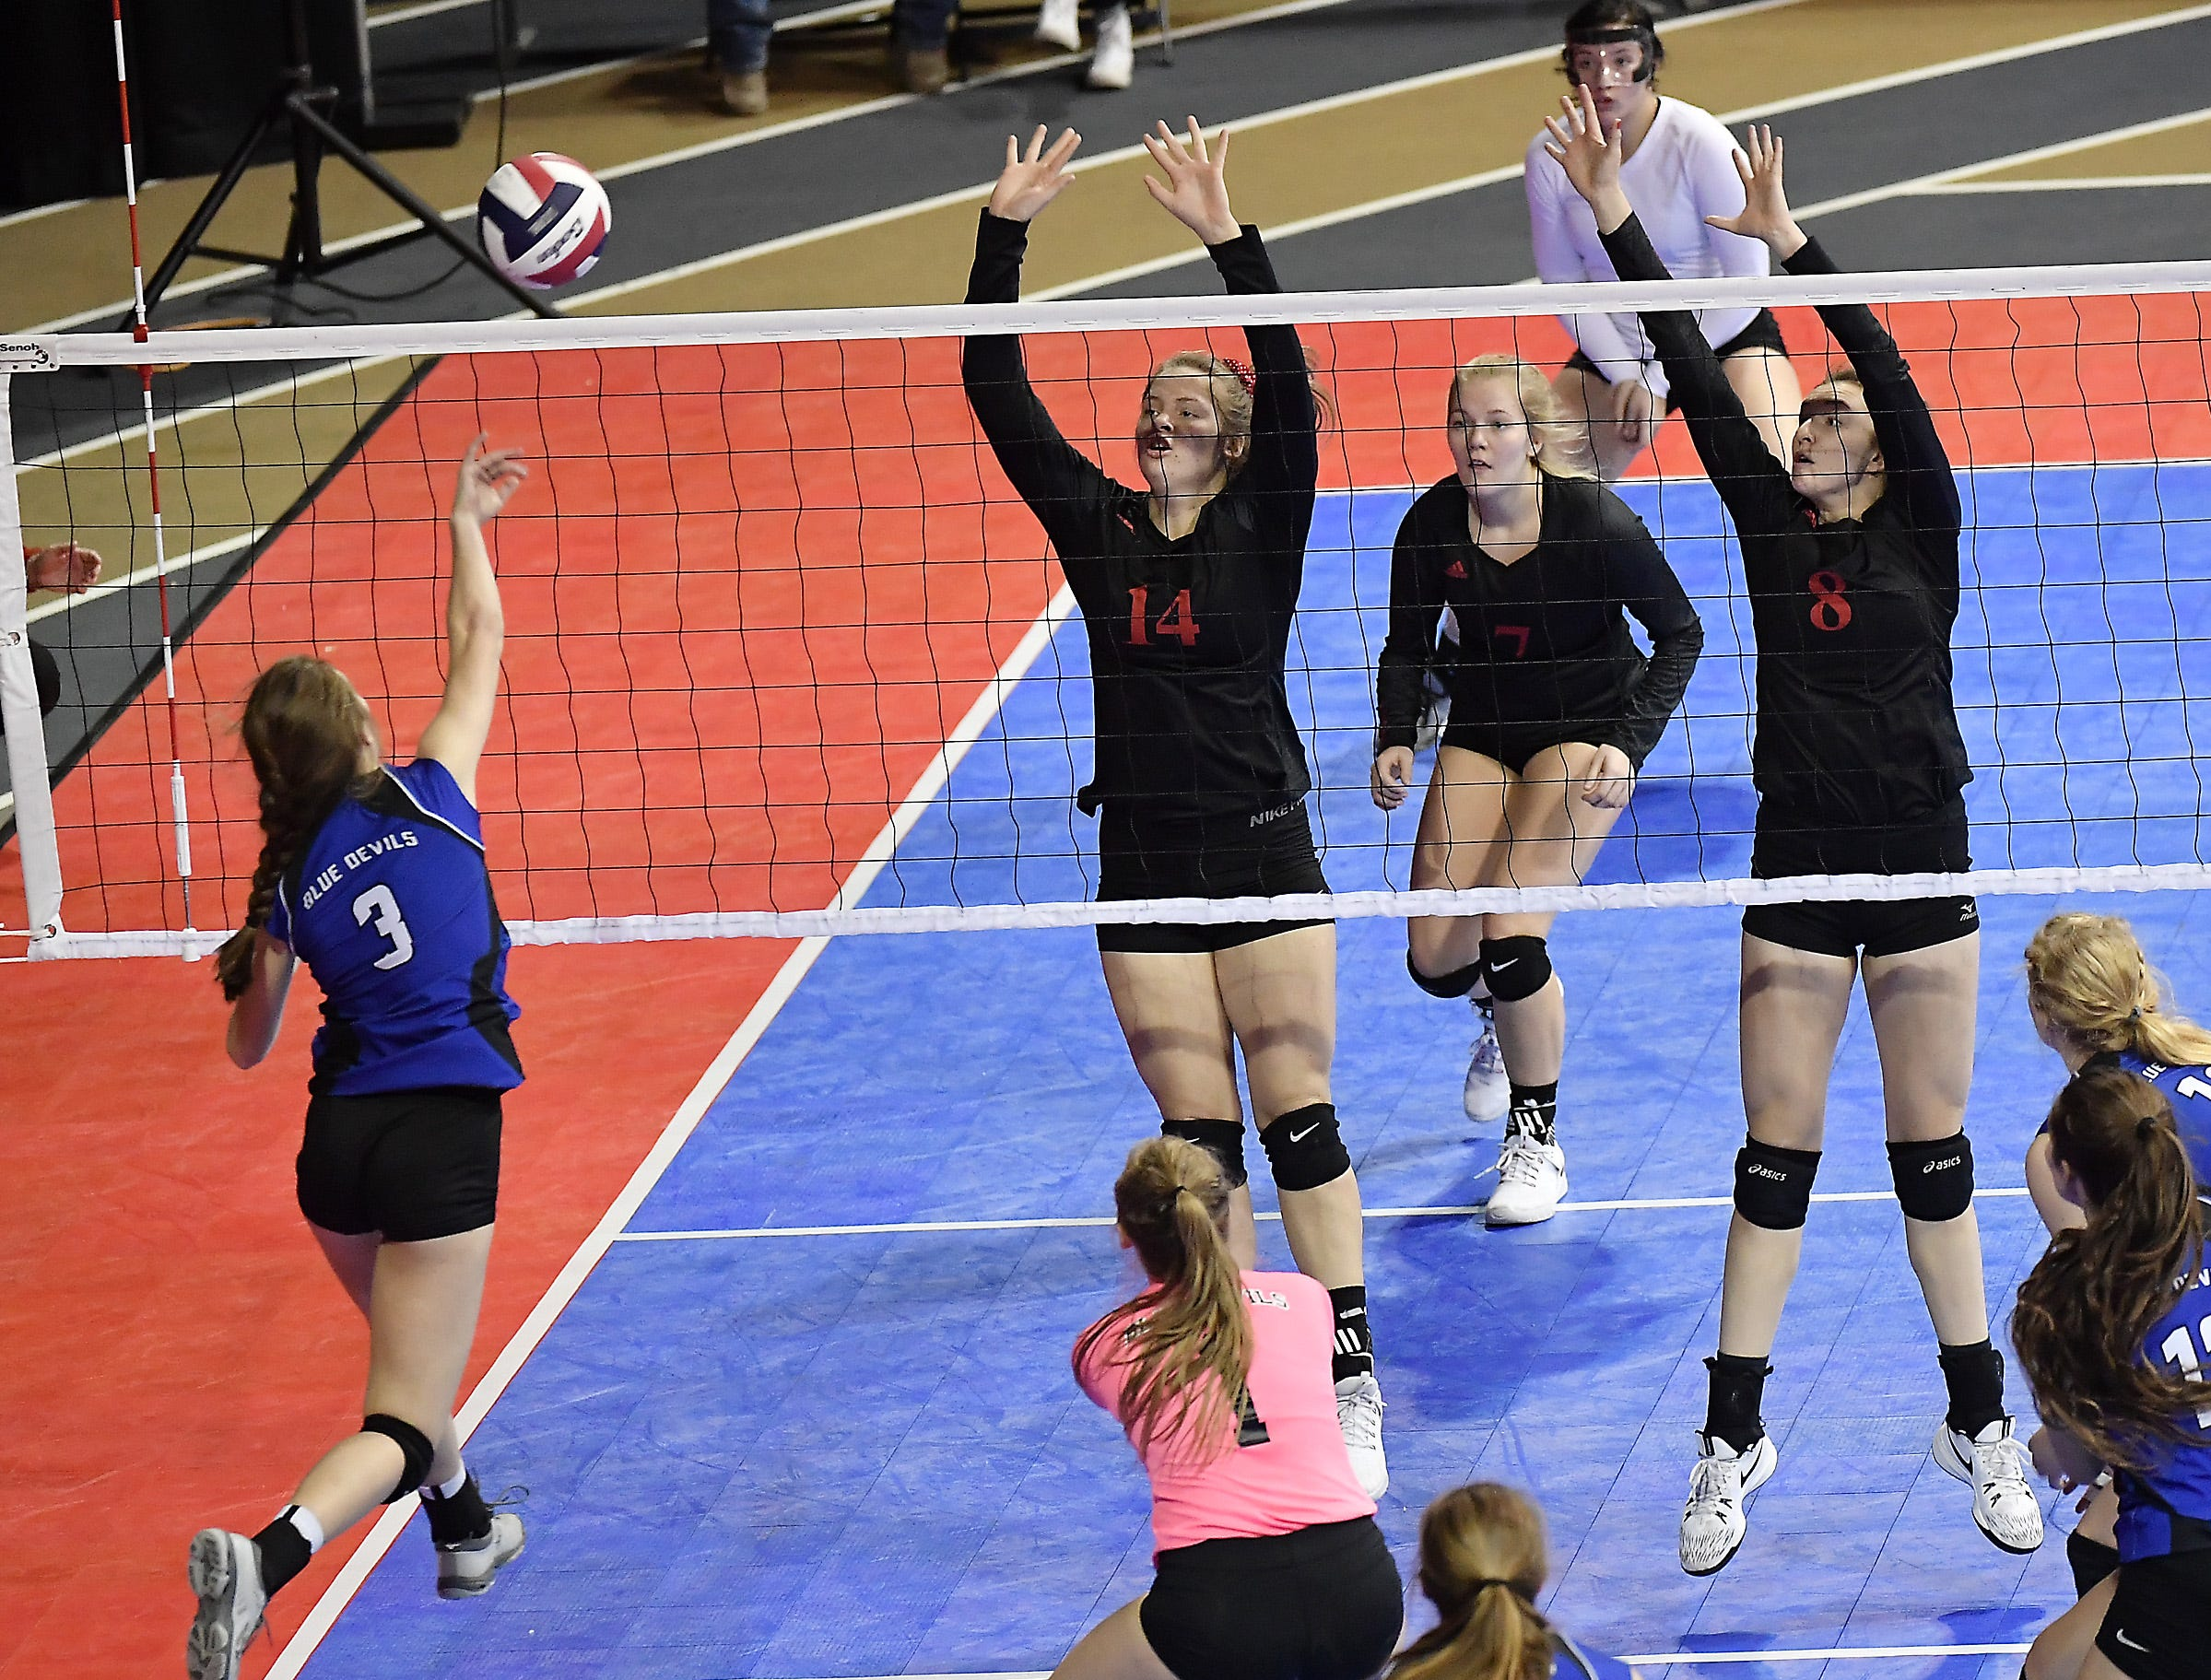 Corvallis takes on Glendive at the All-Class State Volleyball Tournament at the Brick Breeden Fieldhouse in Bozeman.